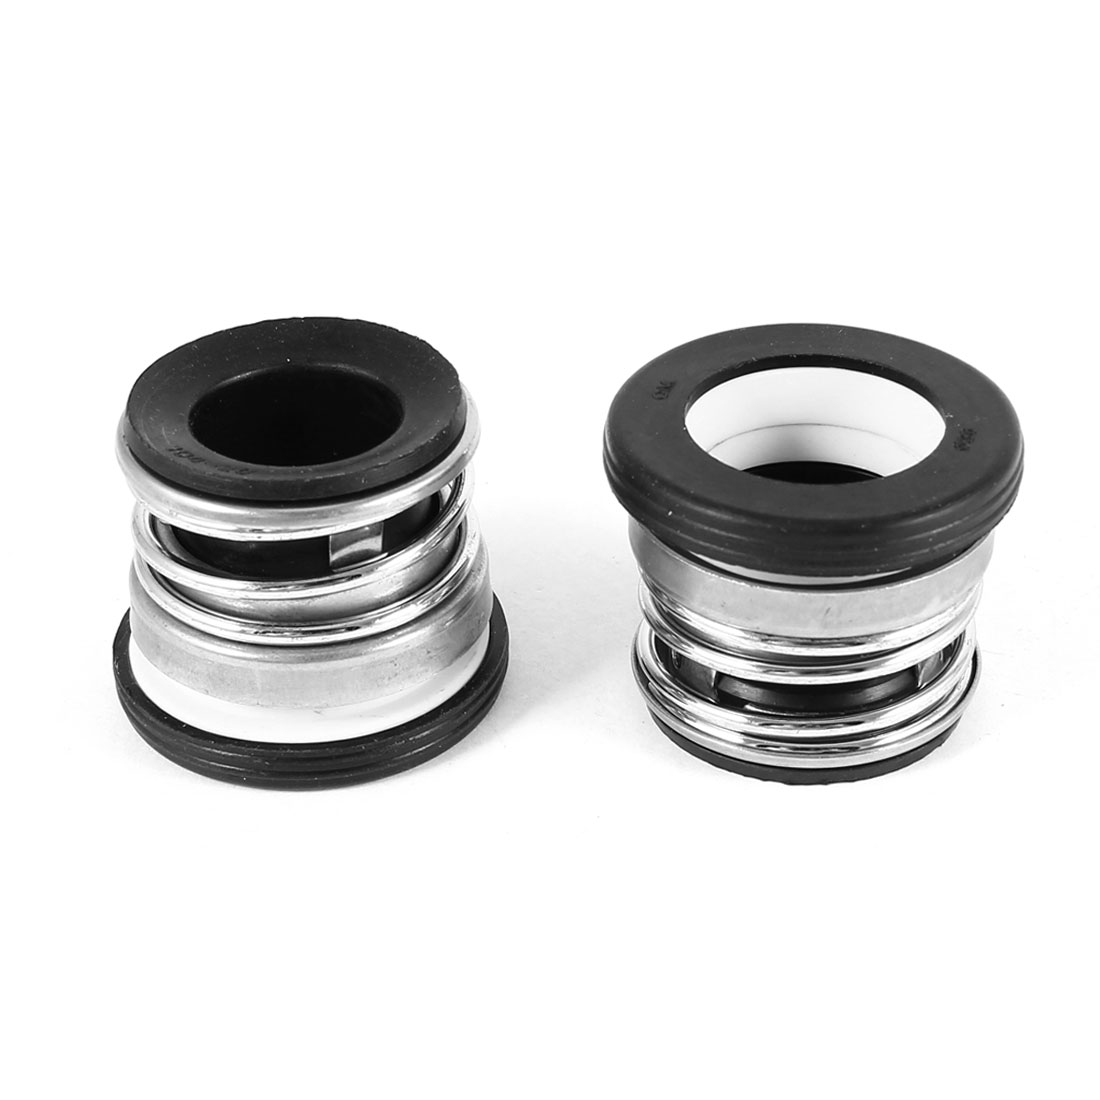 2pcs 20mm Internal Dia Single Coil Spring Black Rubber Bellows Water Pumps Mechanical Seal